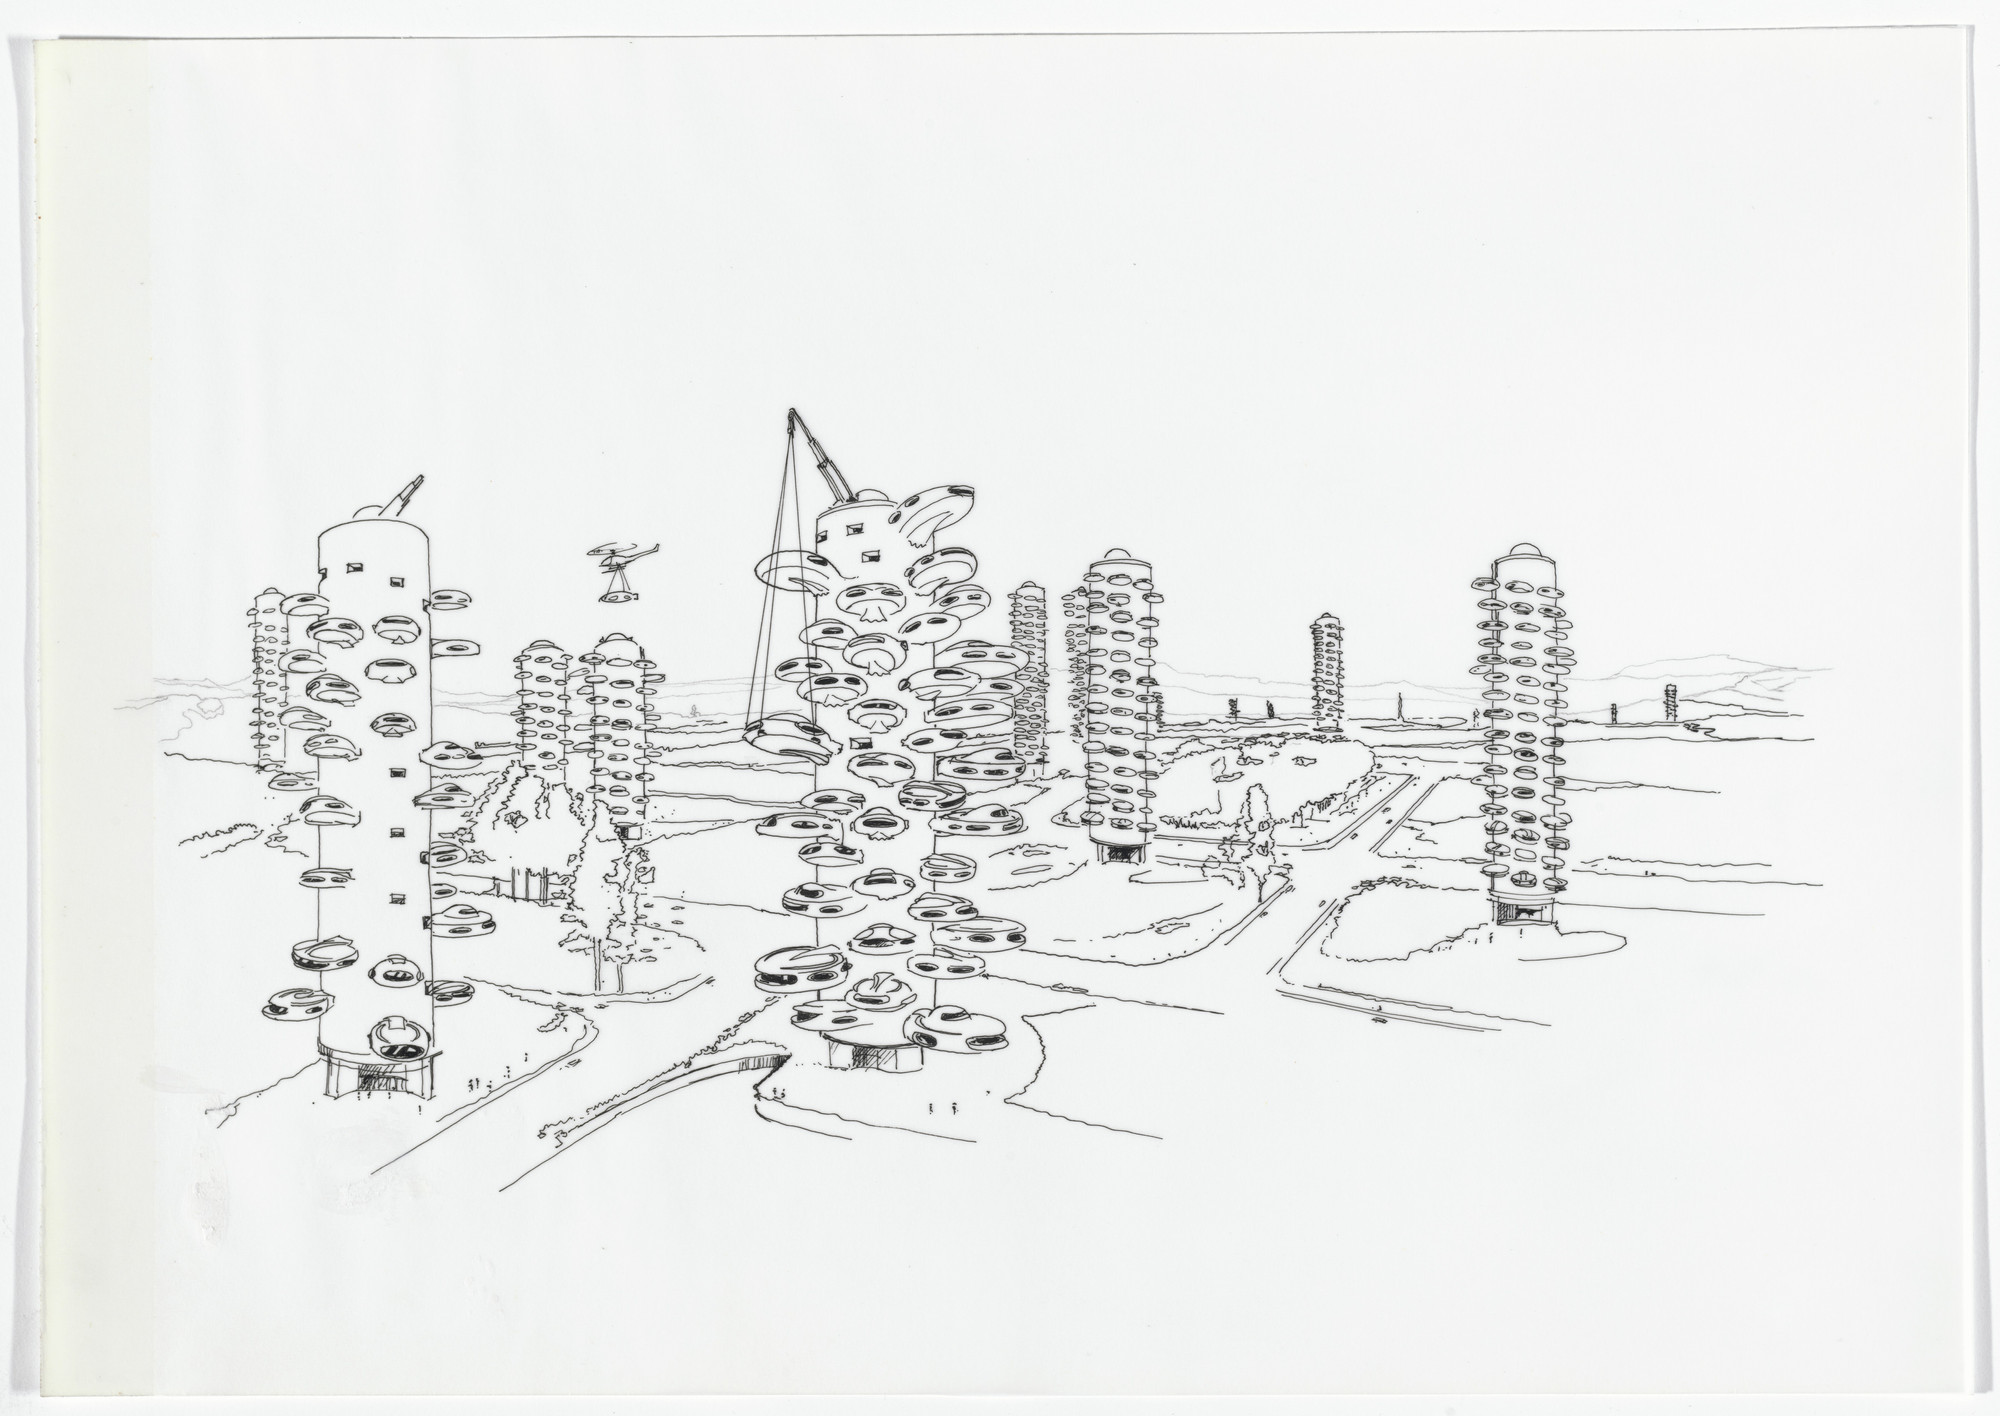 Daniel Grataloup. Urban Proposal with Multi Thin-Shell Capsules, project (Aerial perspective). 1970